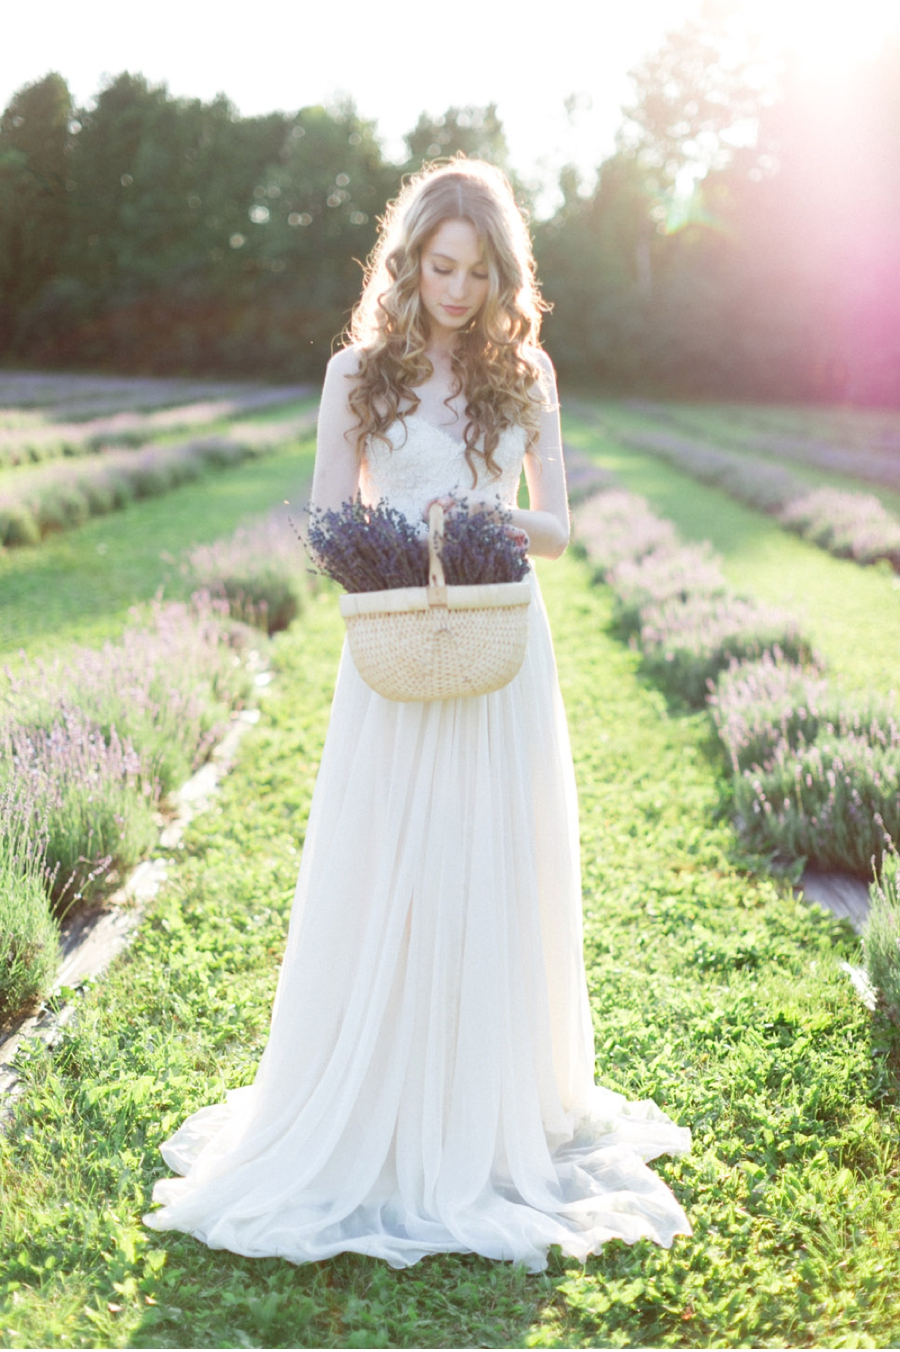 Bride-at-Lavender-Farm-Ontario